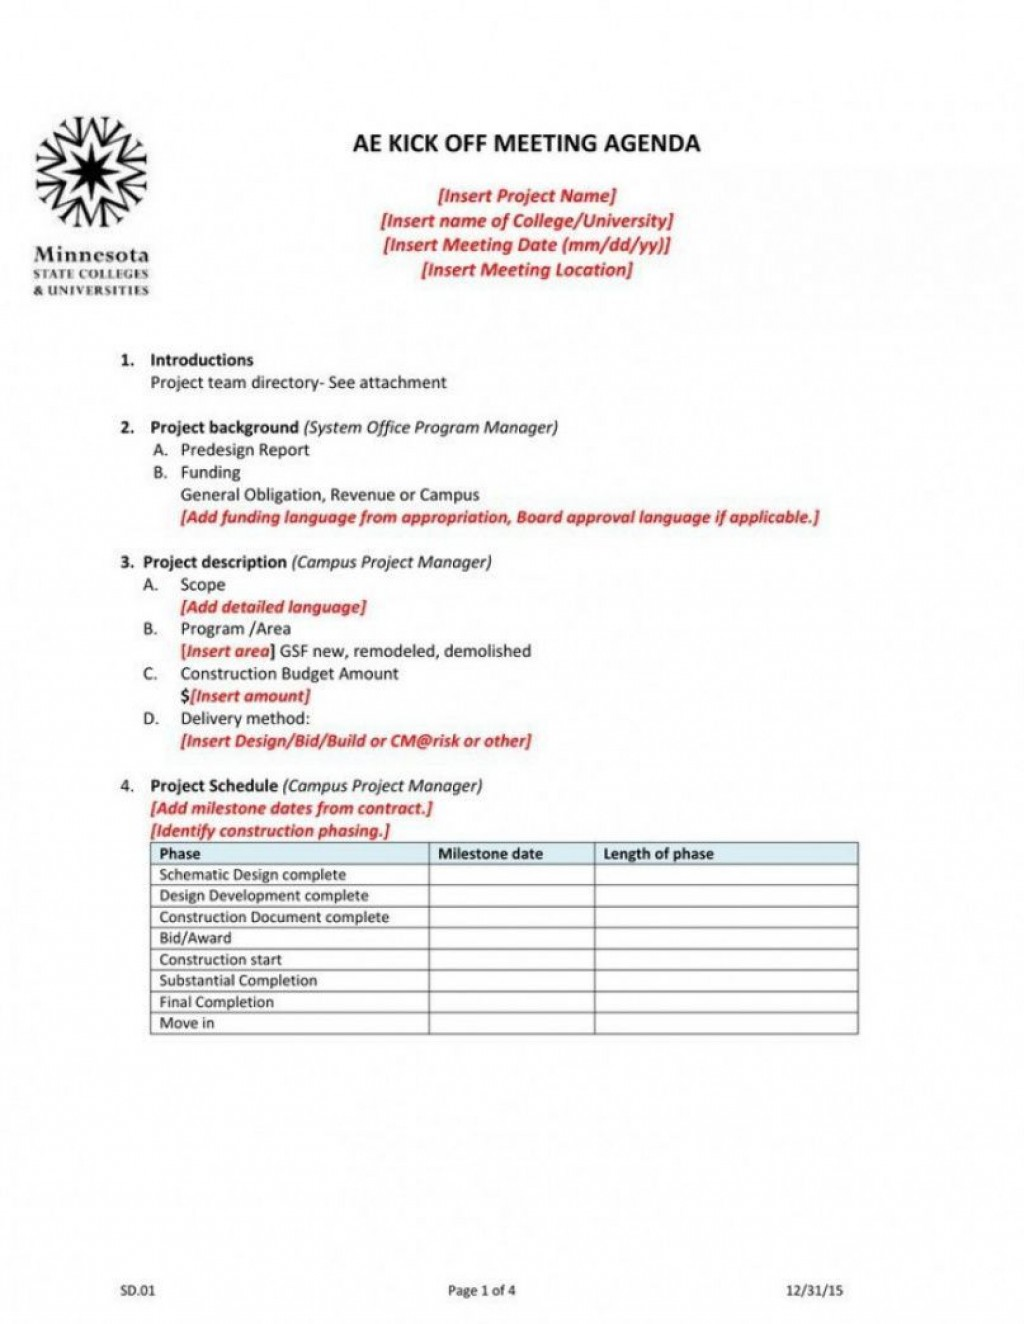 007 Beautiful Project Kickoff Meeting Agenda Example Design  Management TemplateLarge